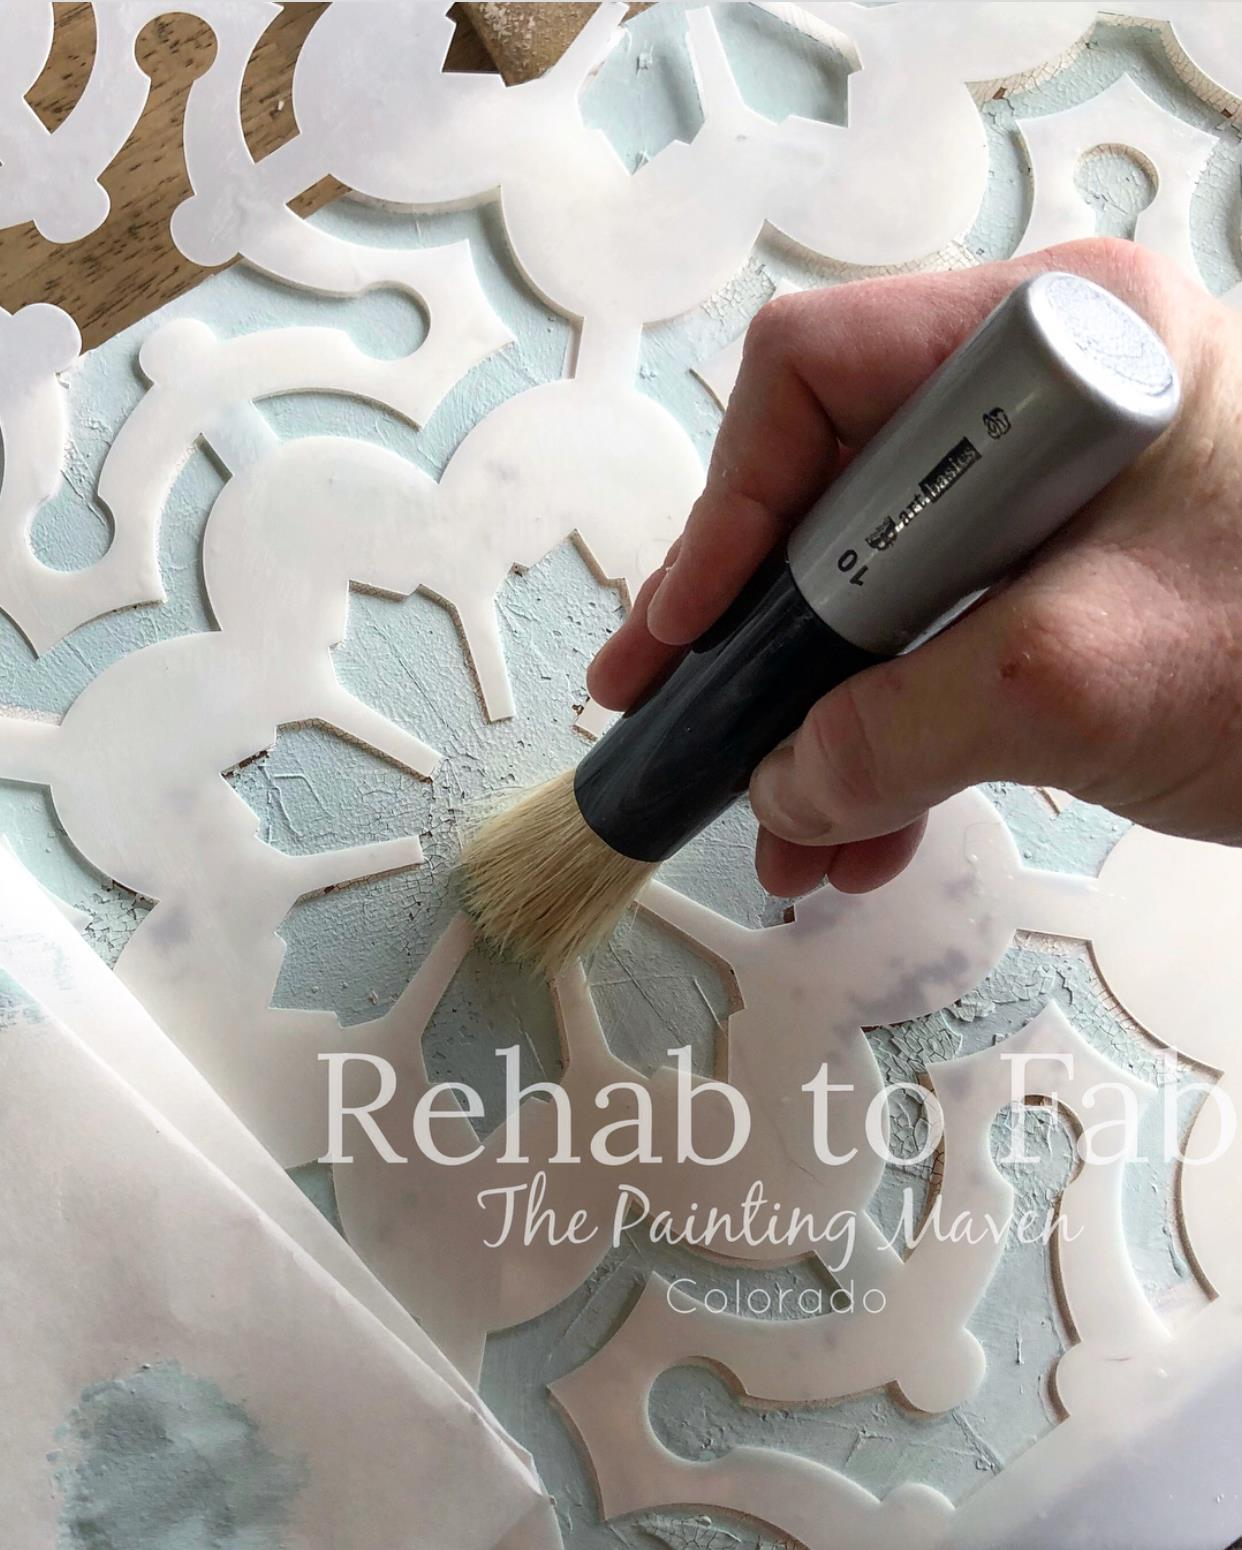 Apply the paint using a stencil brush and use a very small amount of paint over the stencil. The brush has to be almost dry. Dab off excess paint before applying. This will prevent seepage under the stencil and give you a nice clean edge to your design.